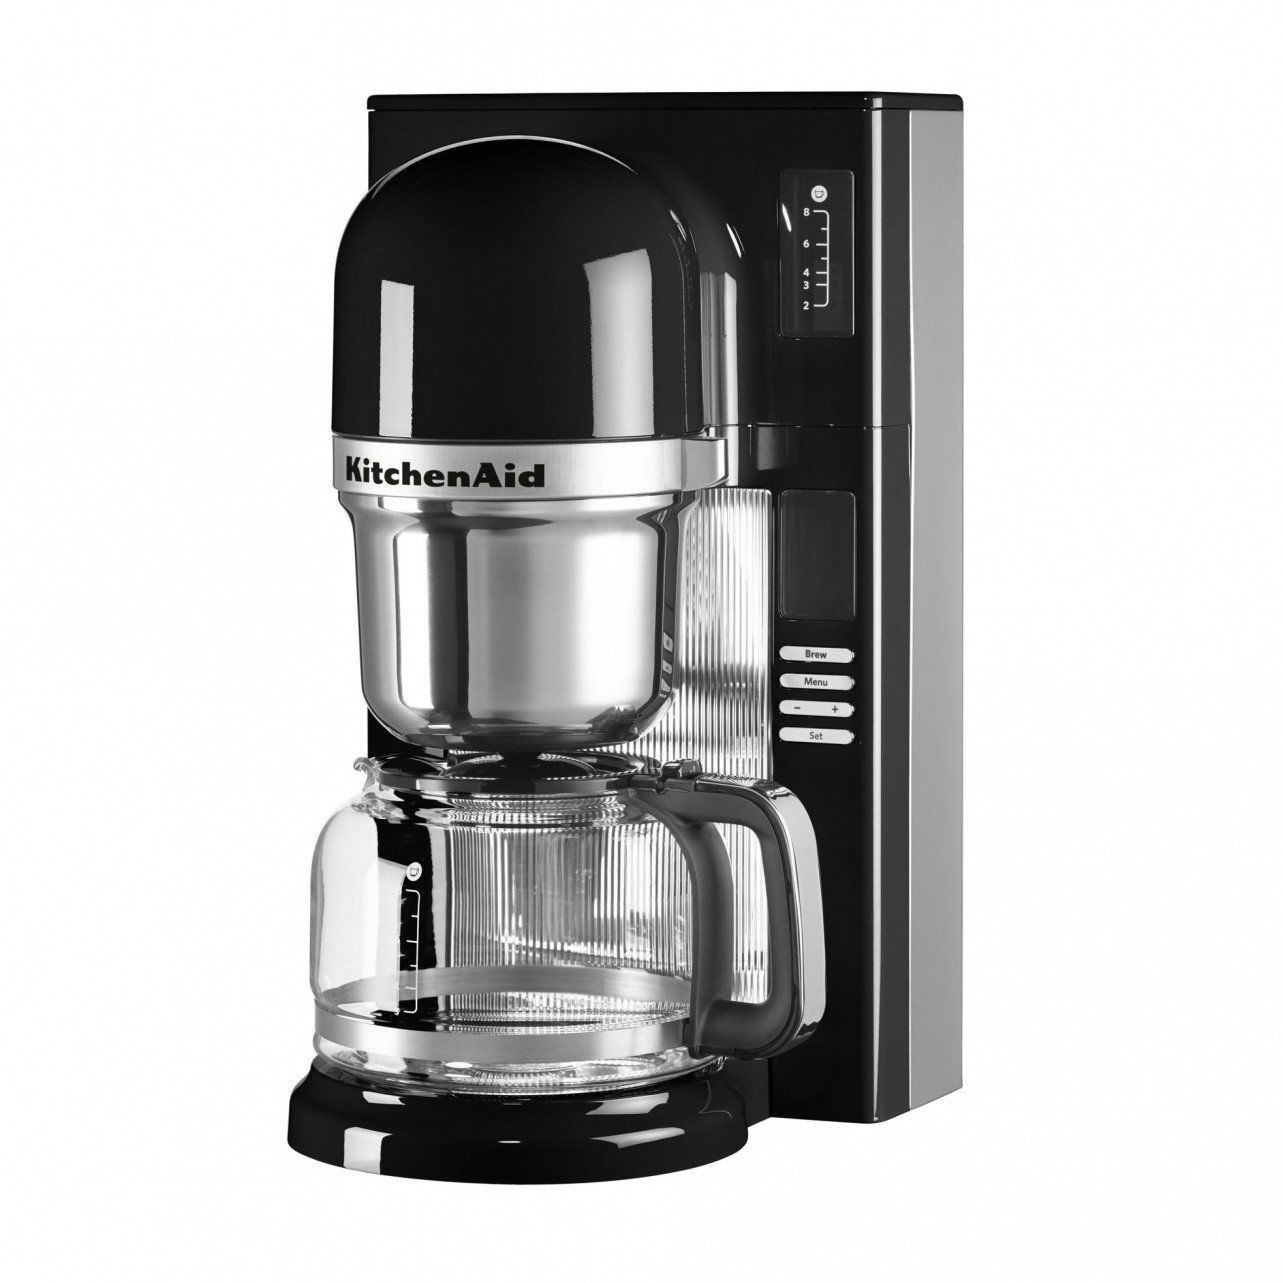 KitchenAid 5KCM0802 Pour Over Coffee Brewer | AmbienteDirect on spacemaker coffee maker, black & decker coffee maker, 4 cup coffee makers, blue coffee maker, 12 cup coffee maker, mr coffee maker, capresso coffee maker, viking coffee maker, cuisinart coffee maker, 60 cup coffee maker, vacuum coffee maker, braun coffee maker, under cabinet coffee maker, thermal coffee maker, personal coffee maker, target red coffee maker, nespresso coffee maker, thermal carafe coffee maker, black and decker coffee maker, starbucks coffee maker, coffee maker grinder, grind and brew coffee makers, bunn coffee maker, farberware coffee maker, 4 cup coffee maker, automatic coffee machines, dual coffee maker, 1 cup coffee maker, 14 cup coffee maker,